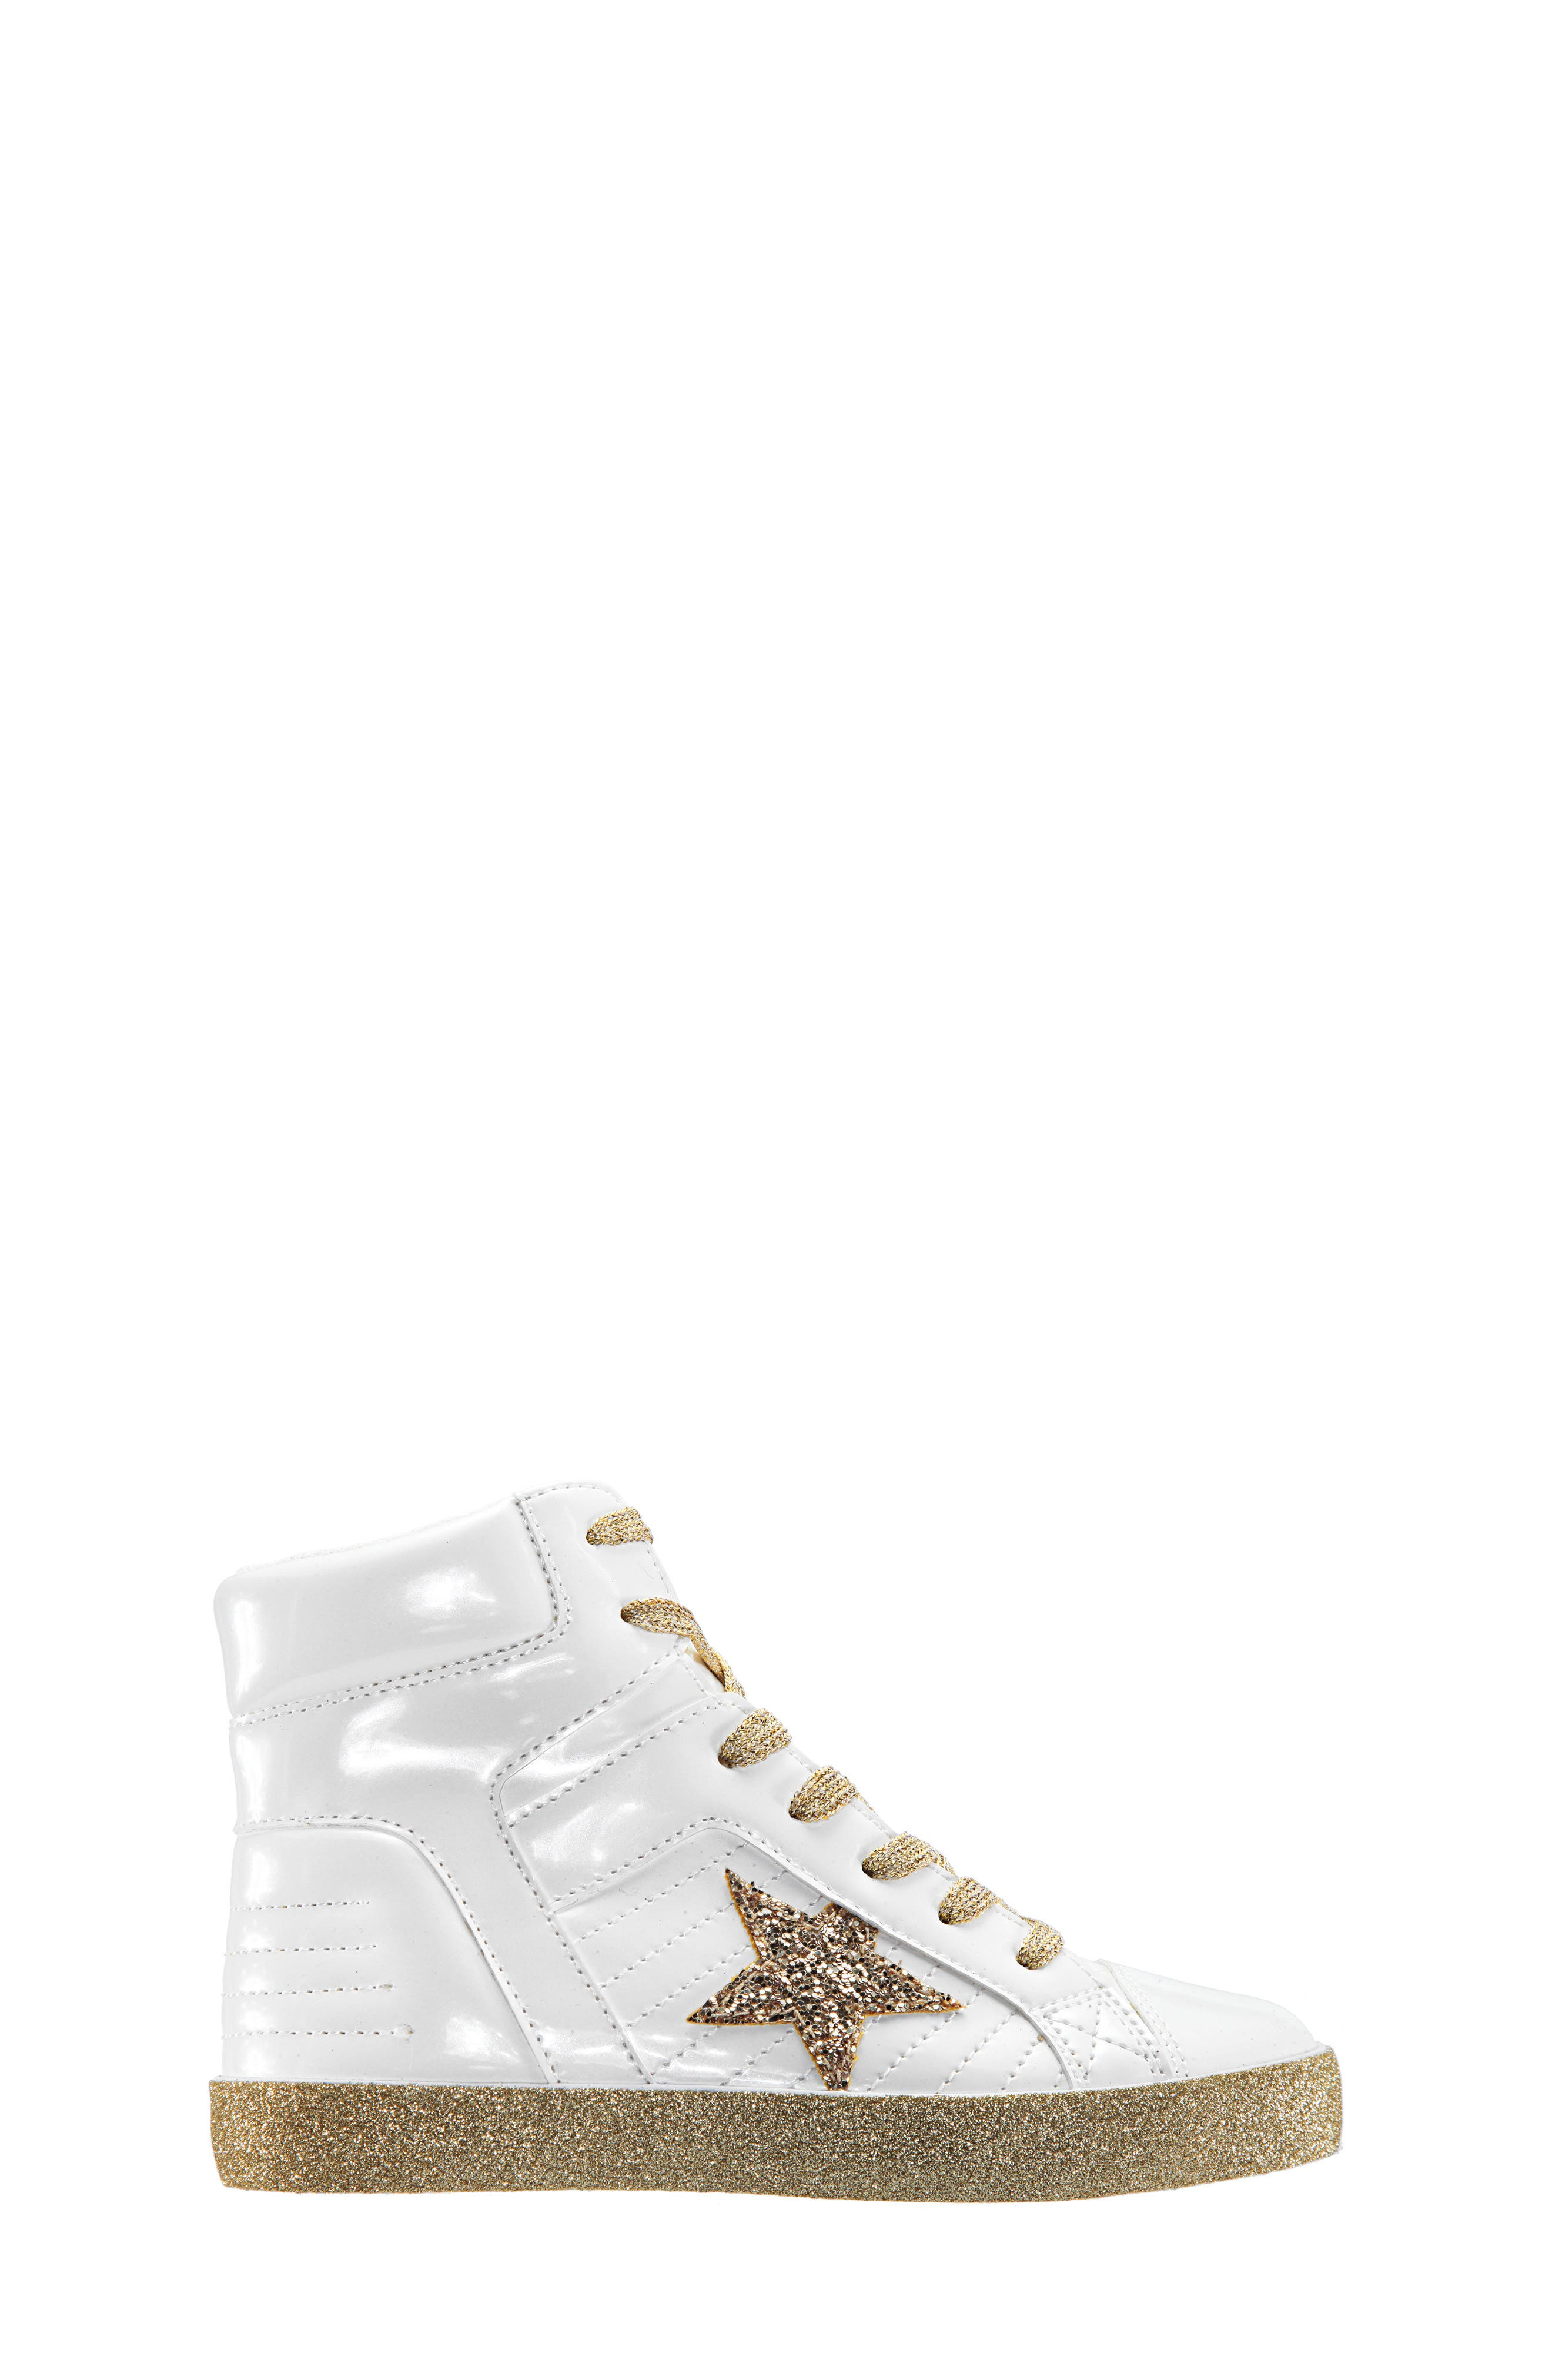 Jesy Glitter High Top Sneaker,                             Alternate thumbnail 3, color,                             WHITE PEARLIZED PATENT